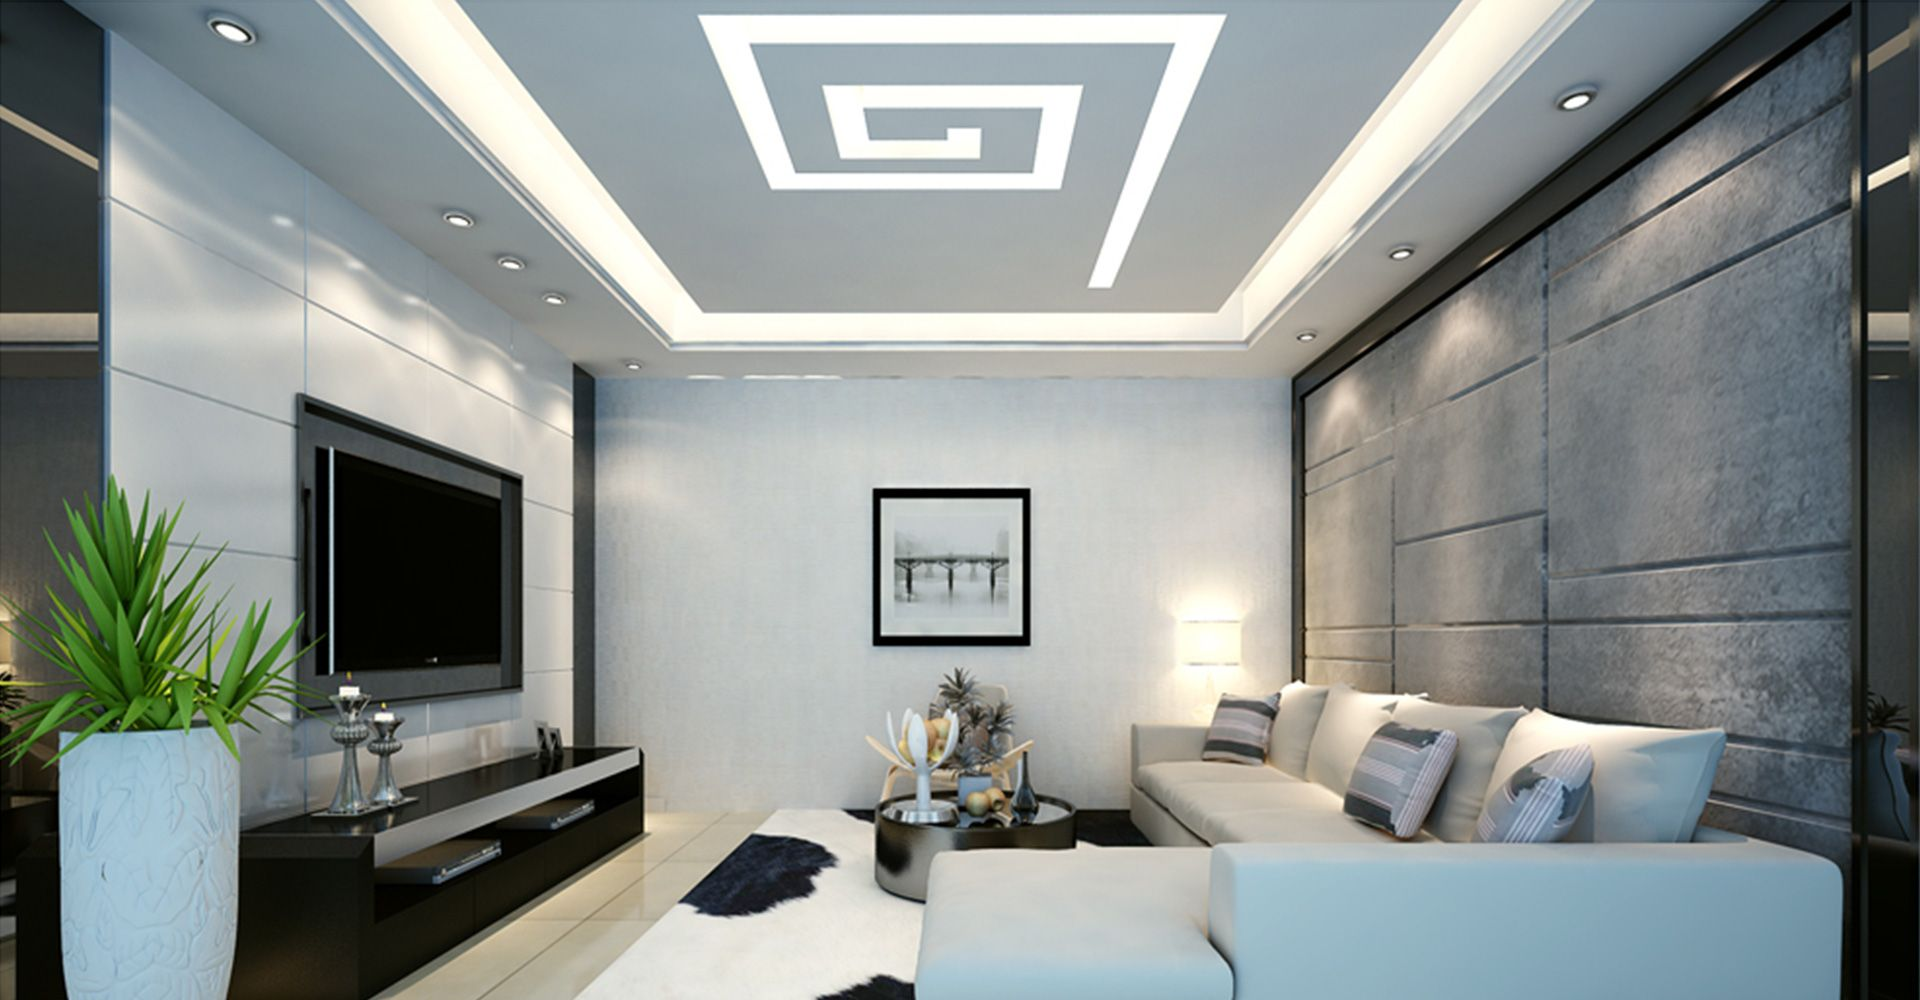 Living Room Ceiling Designs Unique Amazing Living Room False Ceiling Designs For Your Beautiful Space Design Inspiration